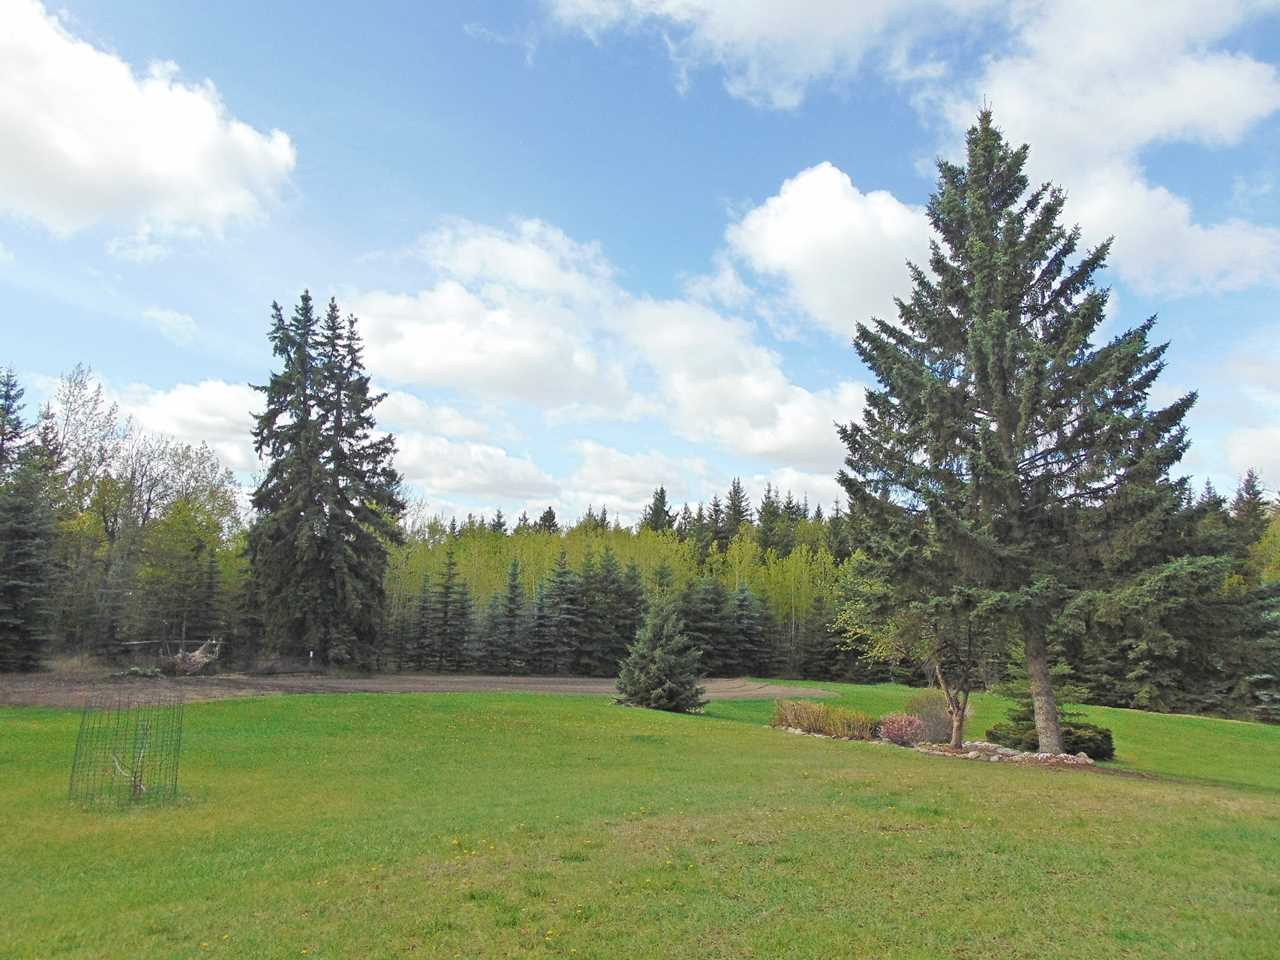 Photo 6: 57130 Rg Rd 230: Rural Sturgeon County House for sale : MLS(r) # E4064722